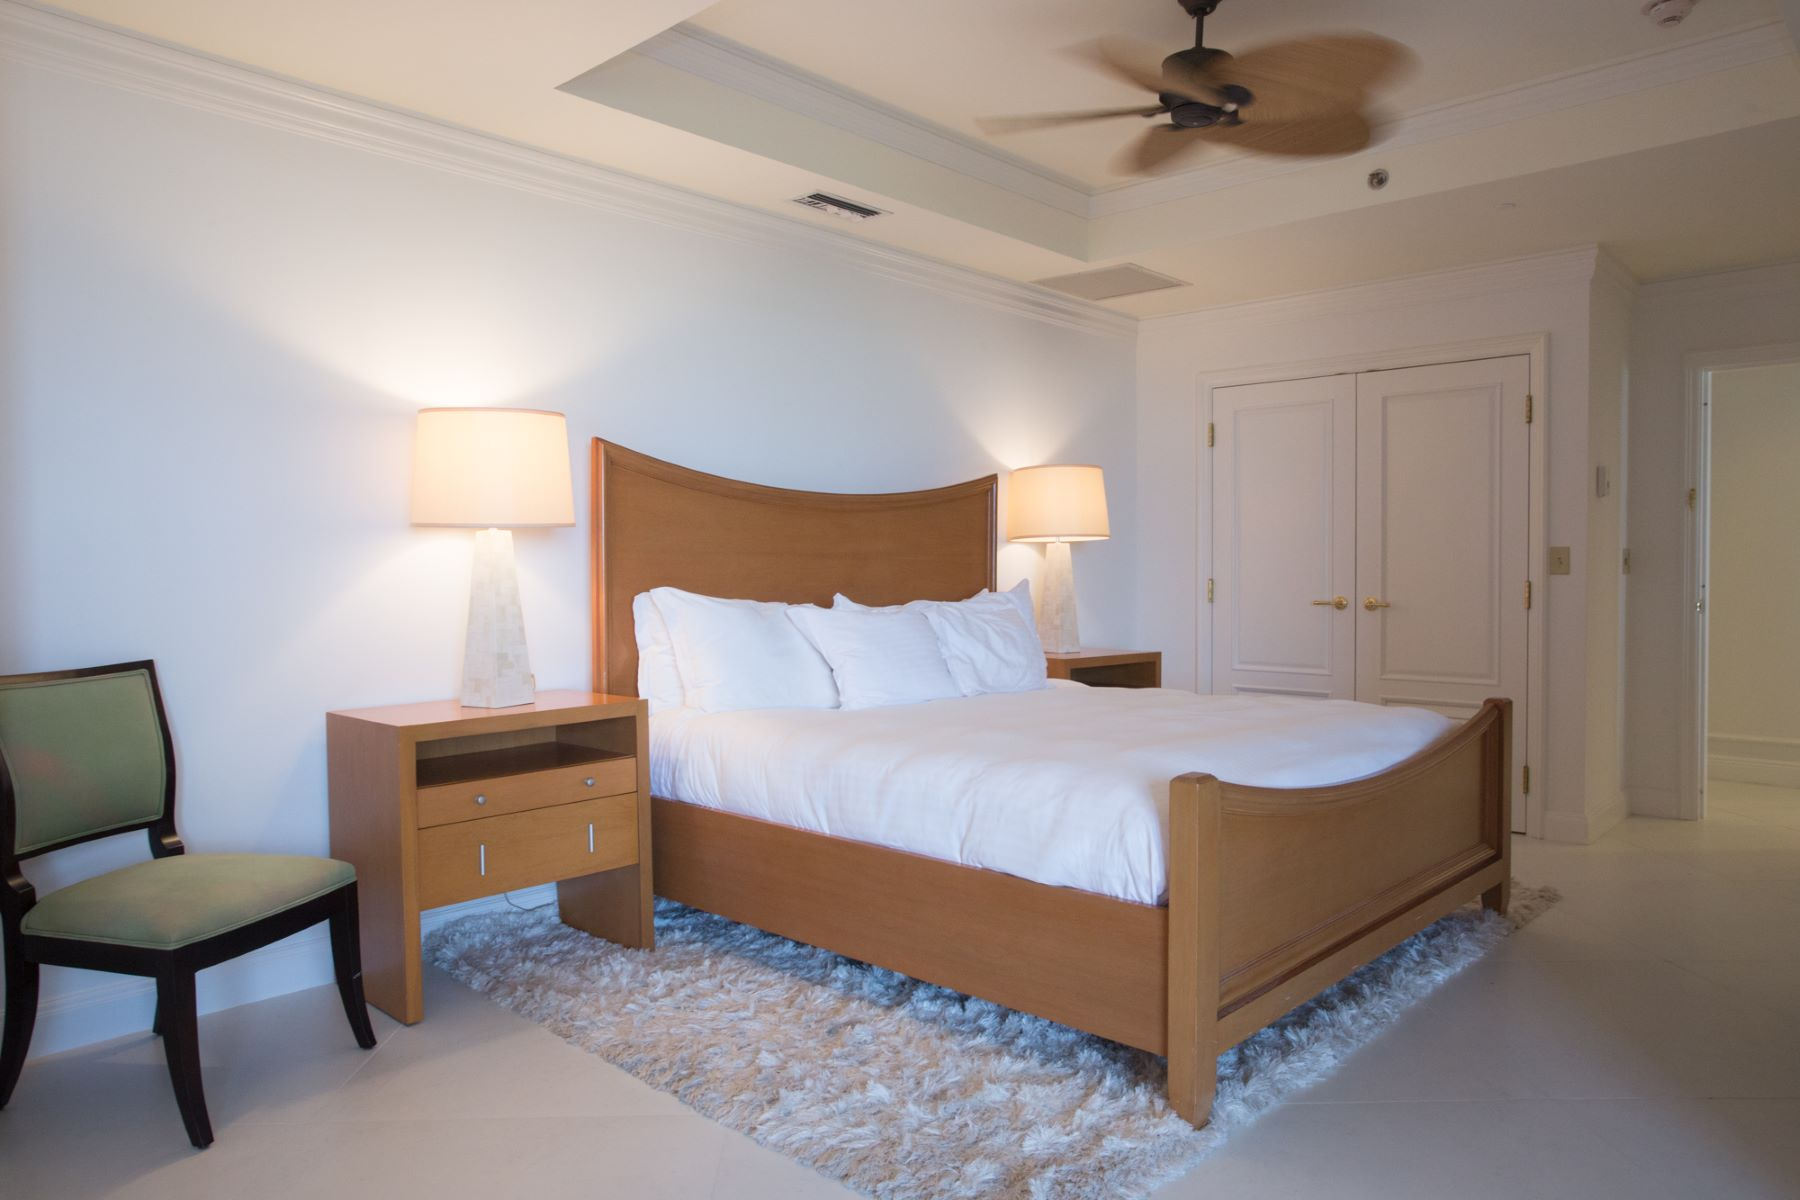 Additional photo for property listing at Ritz-Carlton vacation rental The Ritz-Carlton, Grand Cayman 1059 West Bay Rd Seven Mile Beach,  KY1 Cayman Islands